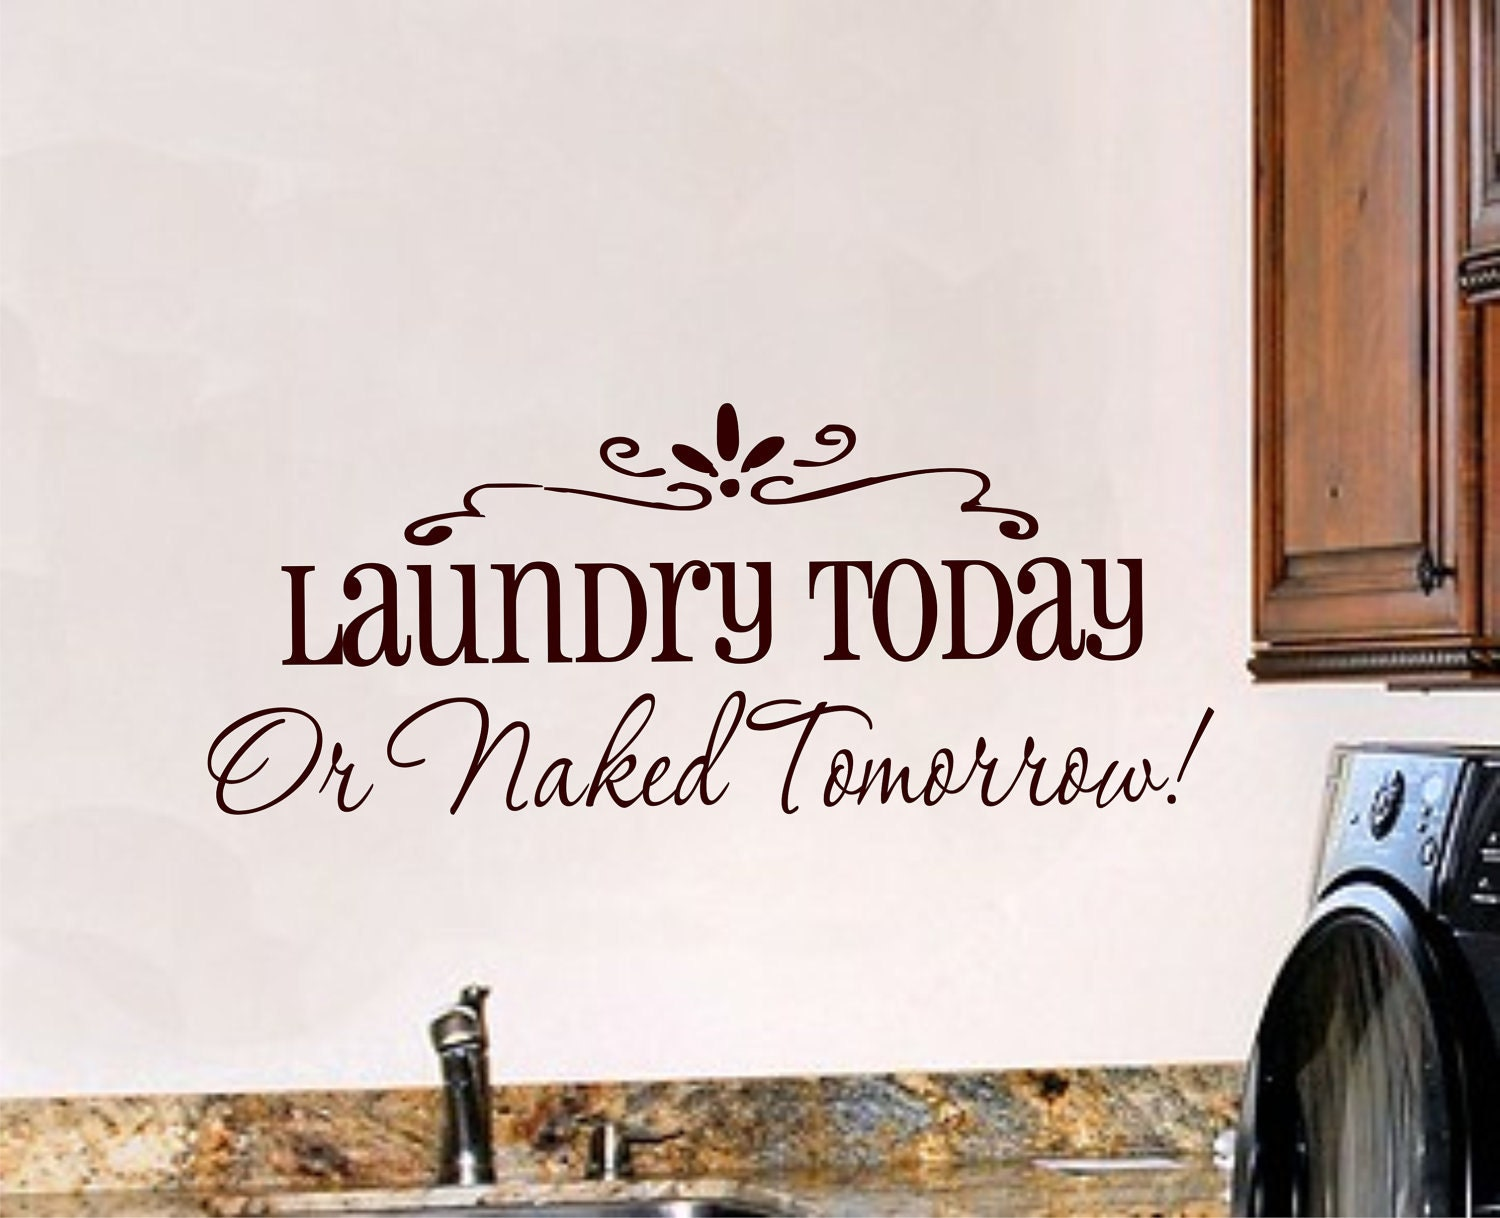 Laundry Room Vinyl Wall Art Laundry Room Wall Decal Laundry Room Decor Vinyl Wall Art